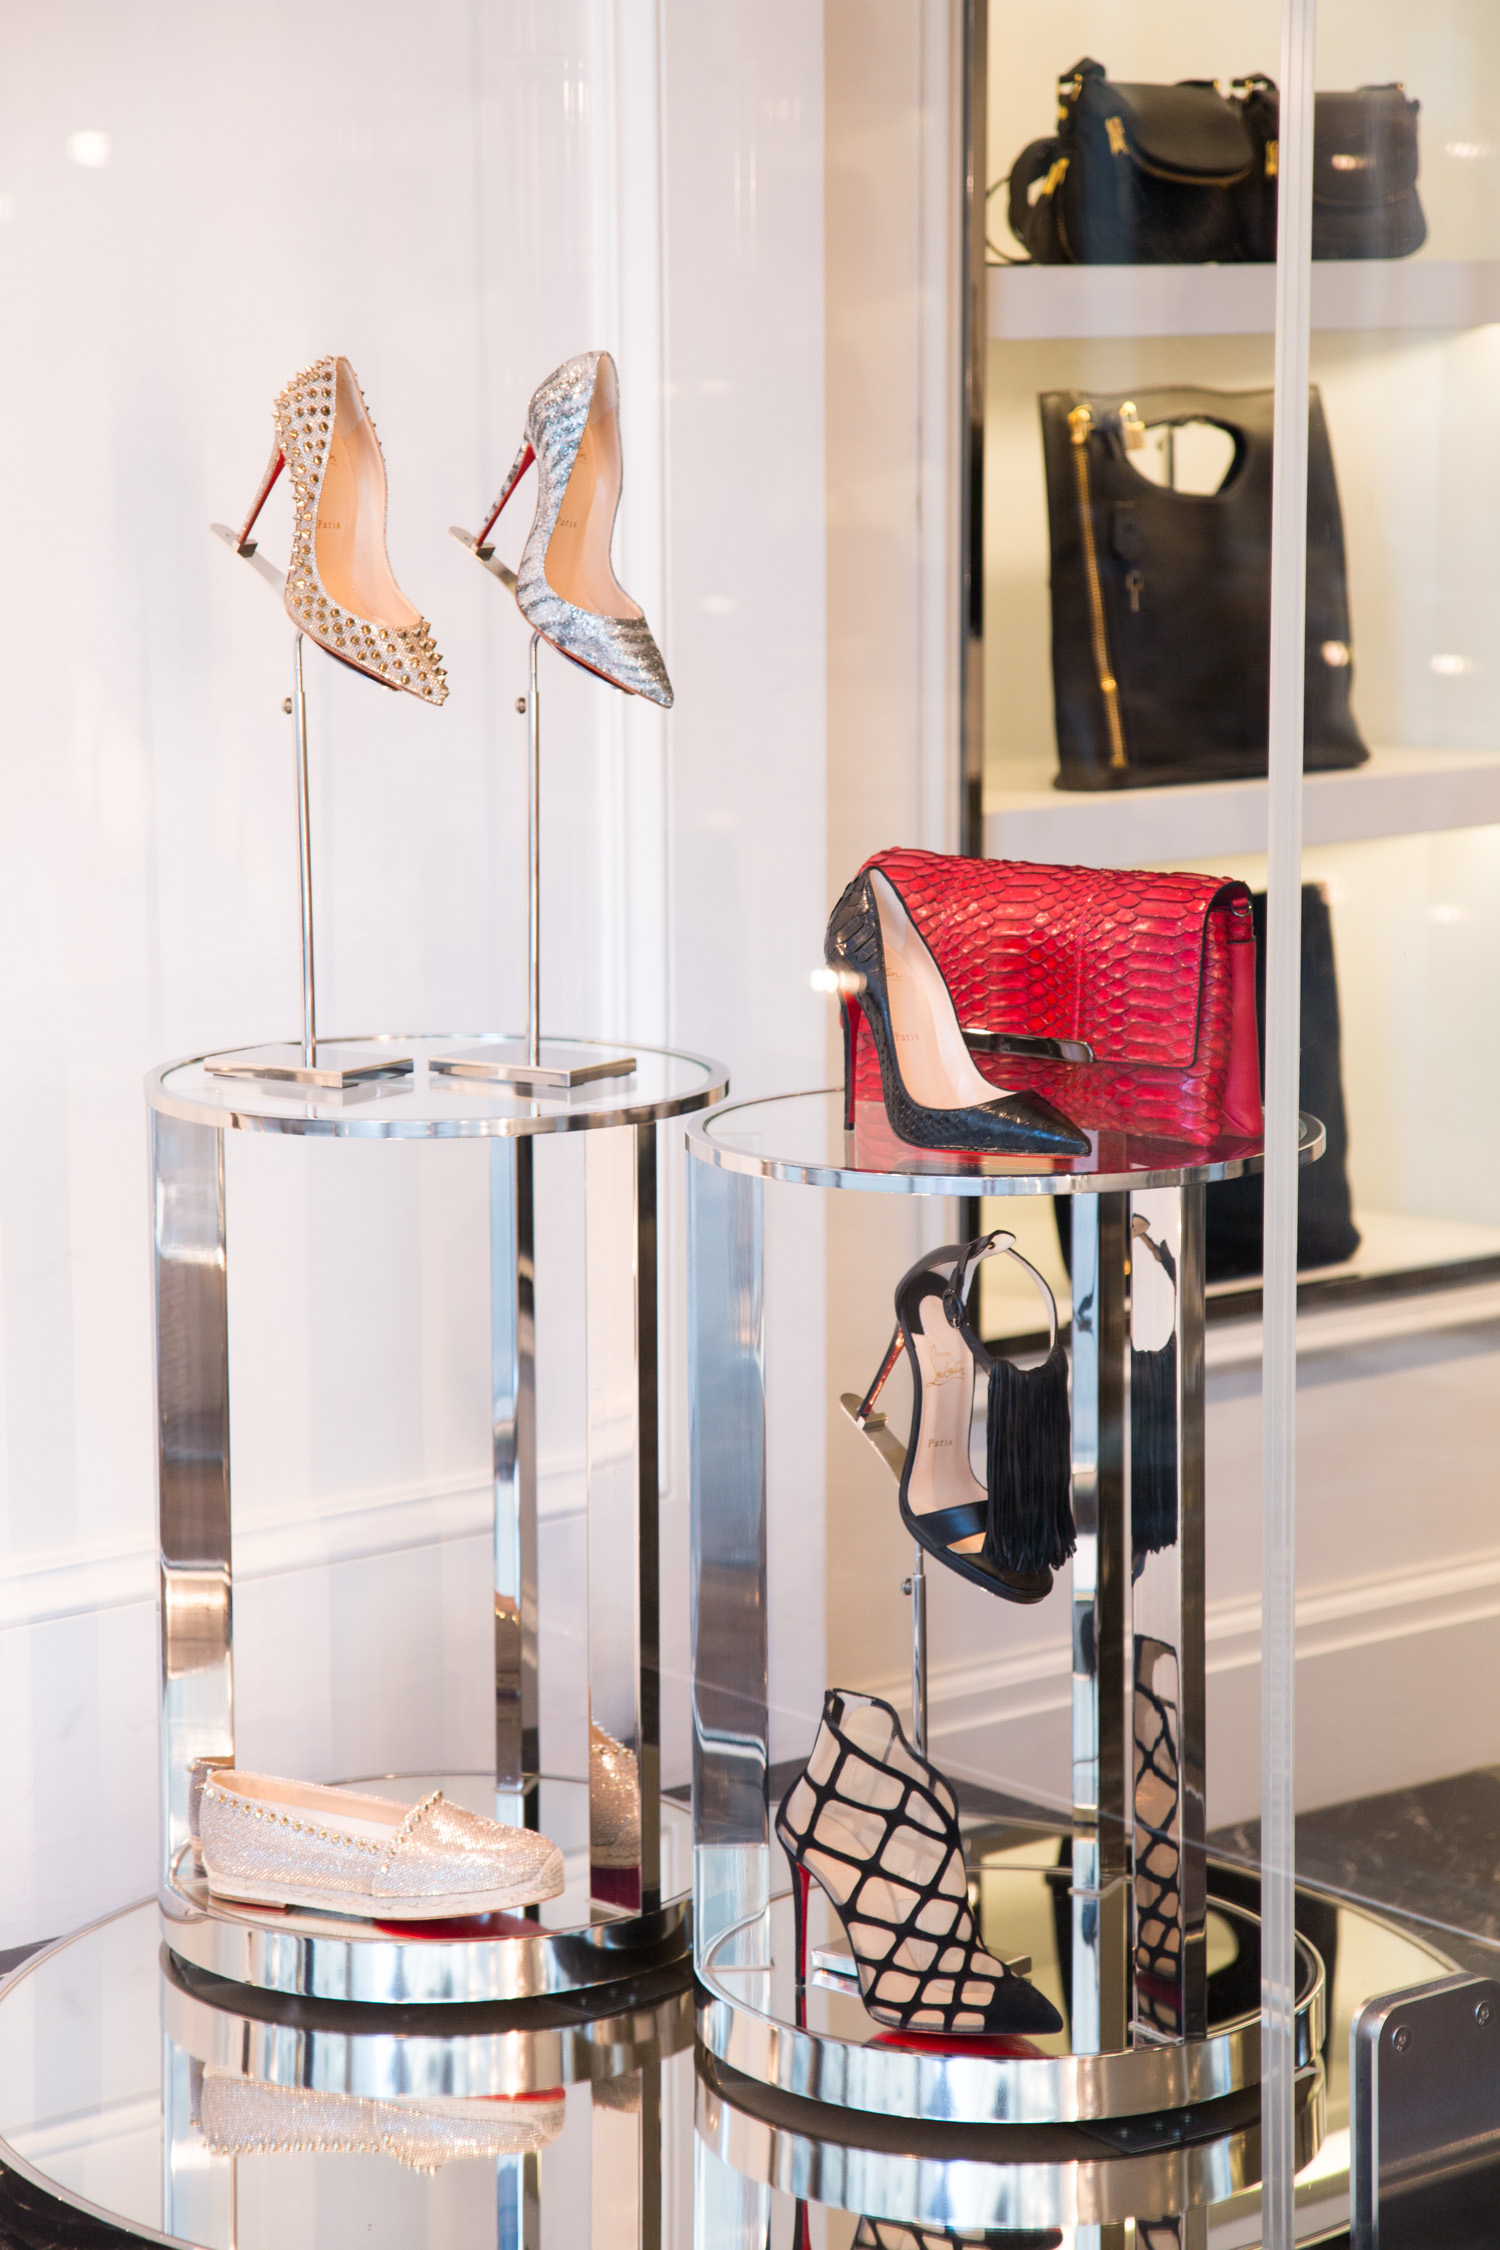 Vienna Picks: Amicis Boutique Vienna | The Daily Dose